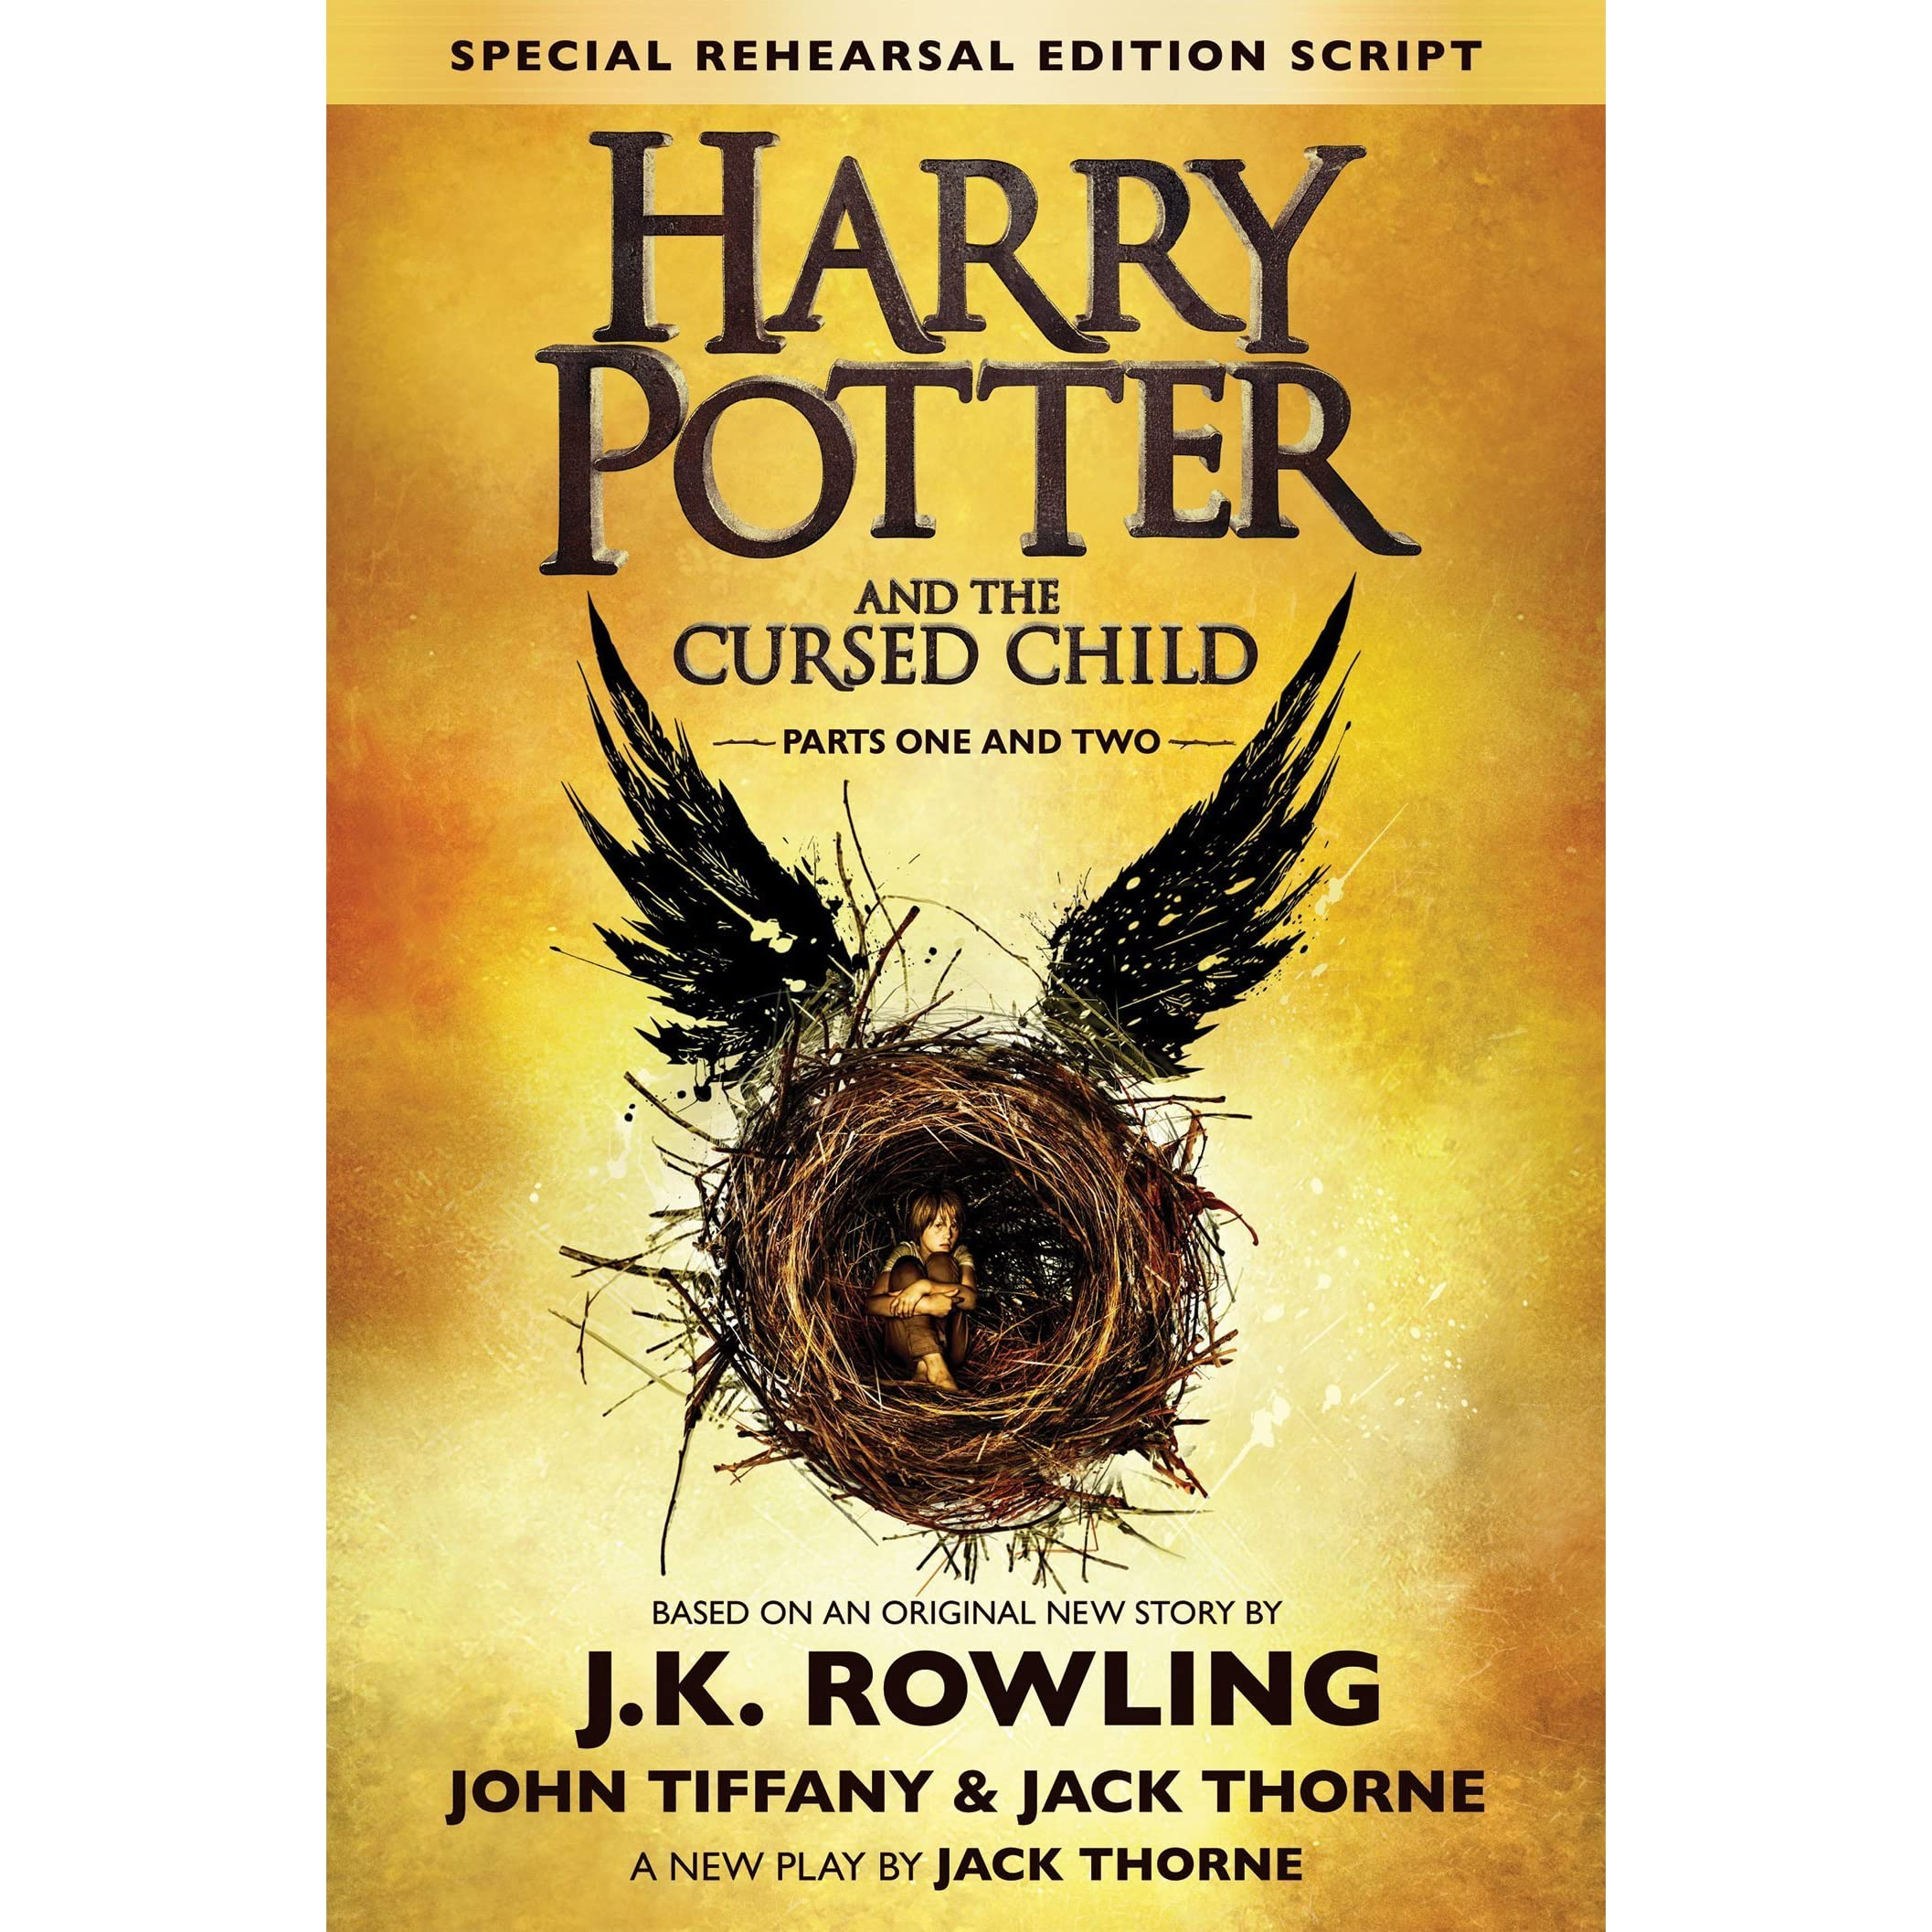 Harry Potter Book Goodreads : Harry potter and the cursed child by j k rowling